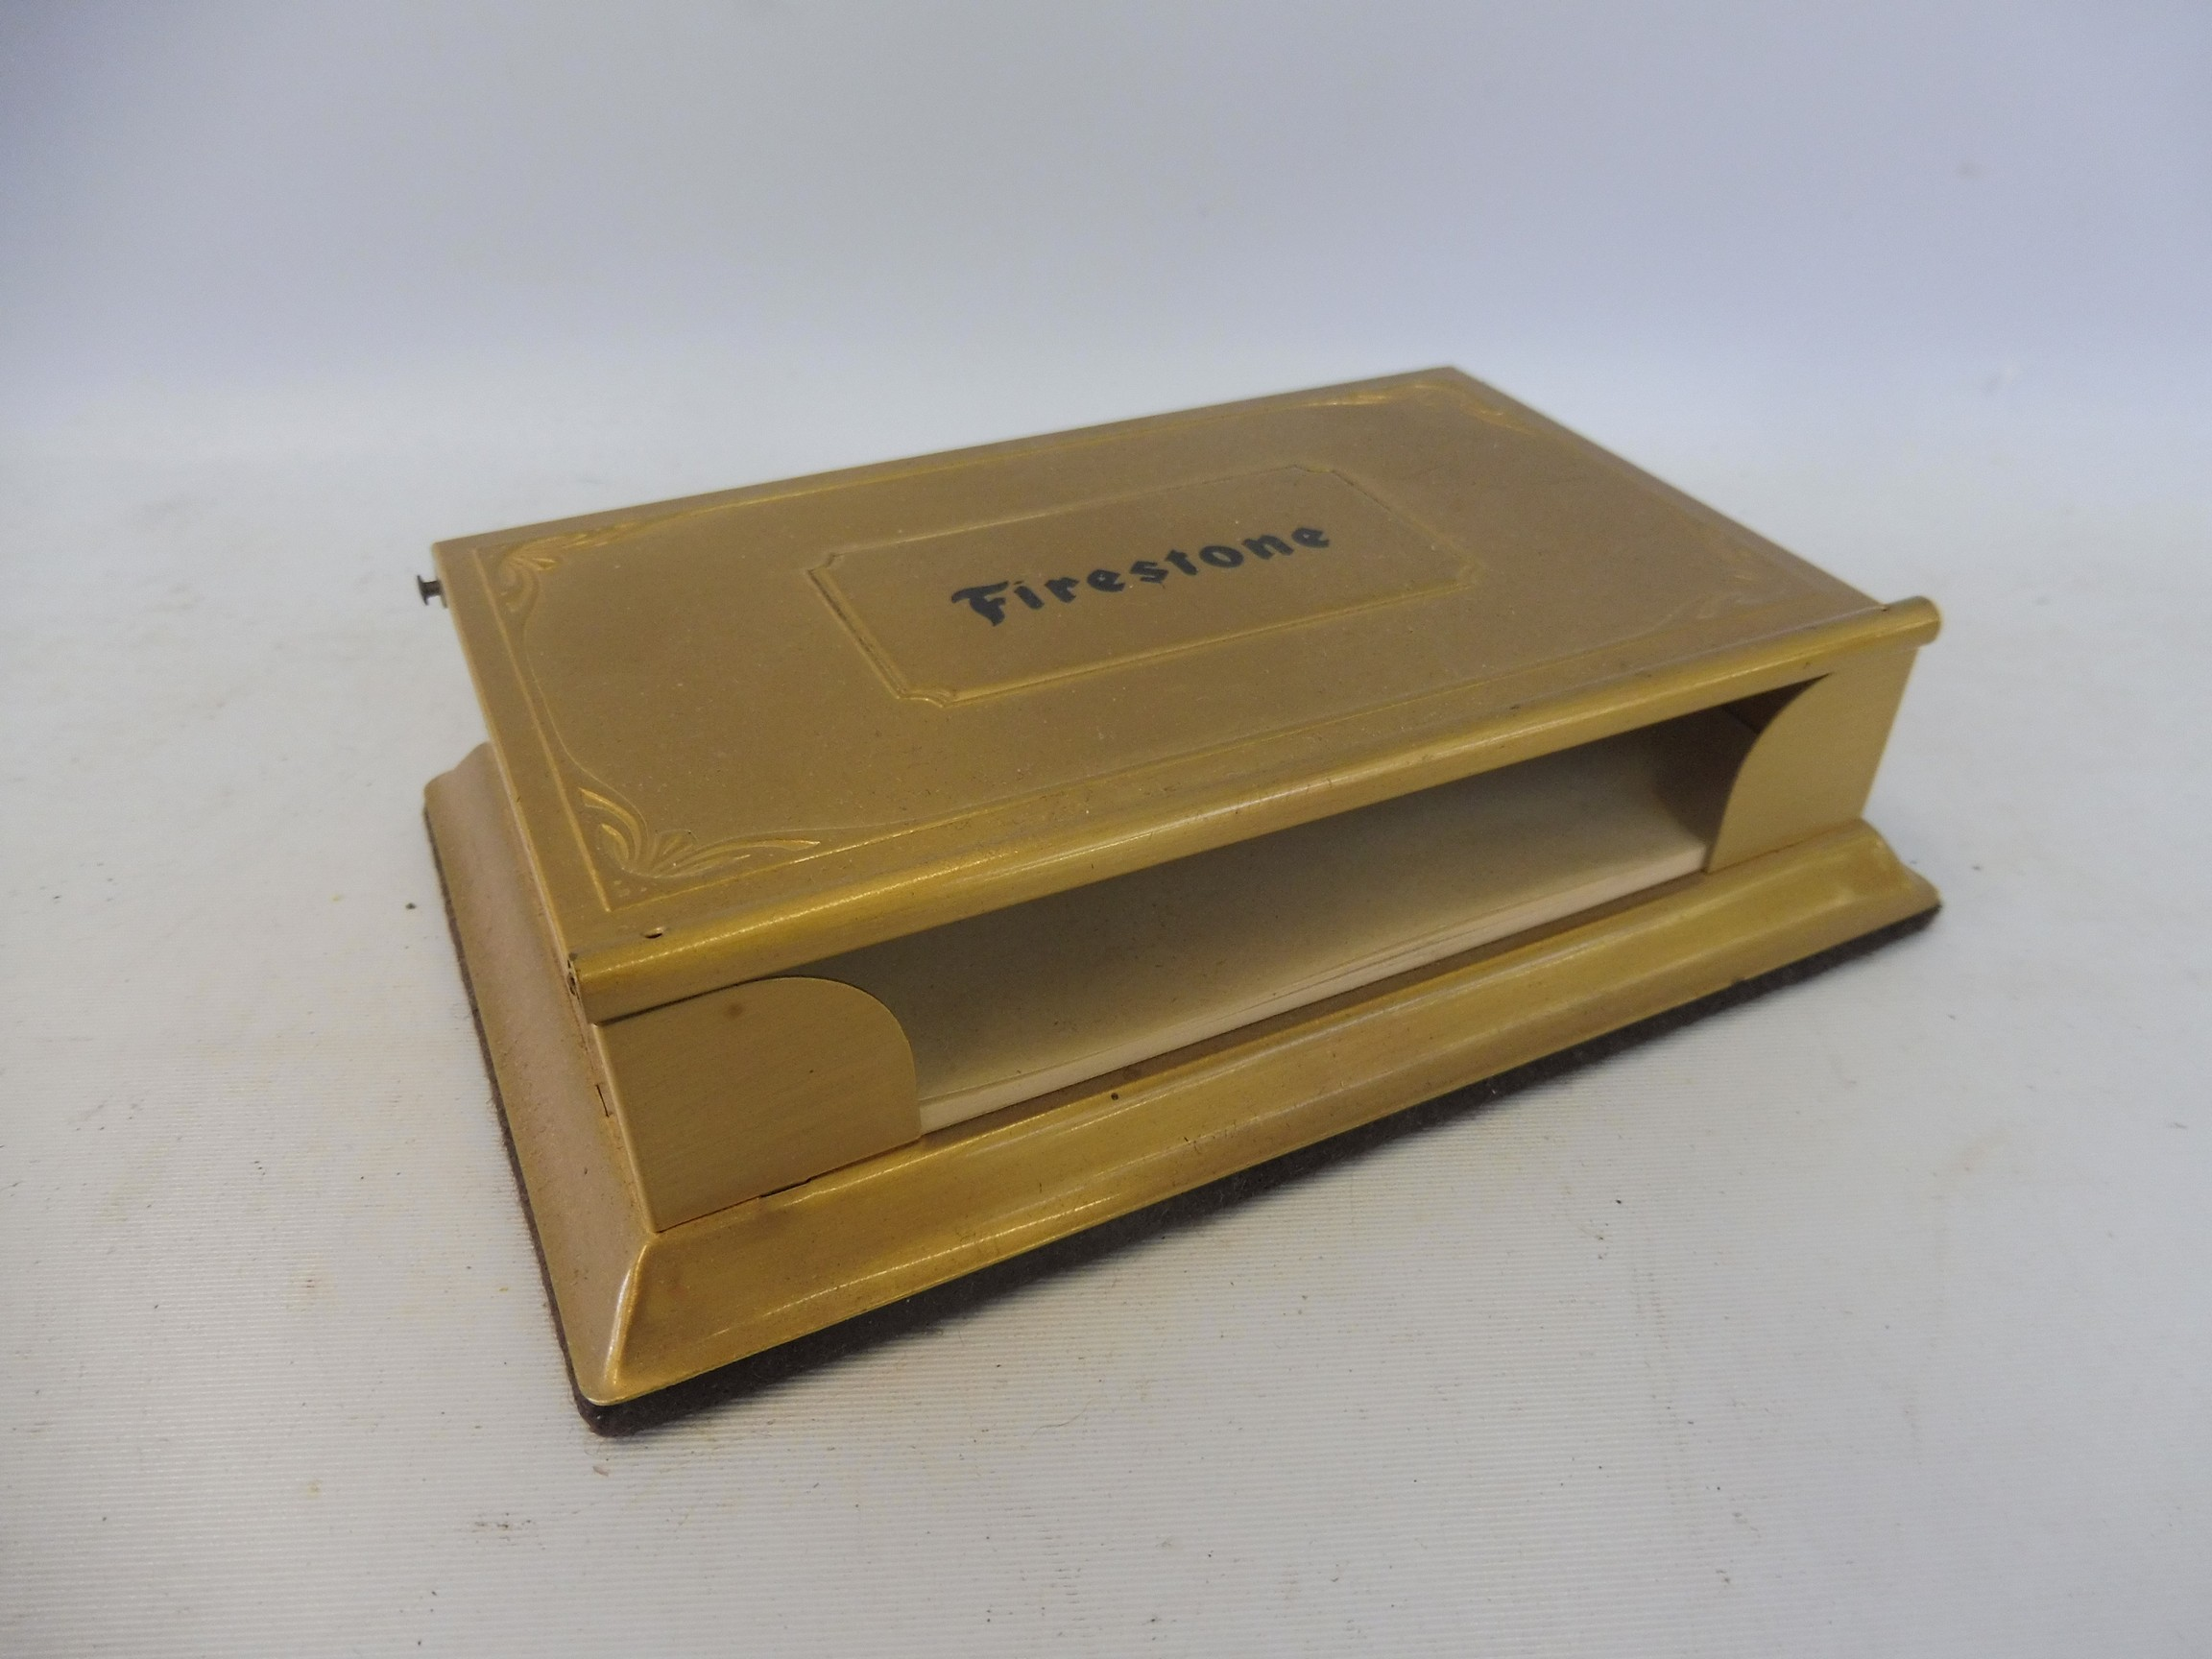 A Firestone tyres advertising brass paper note holder and calendar.